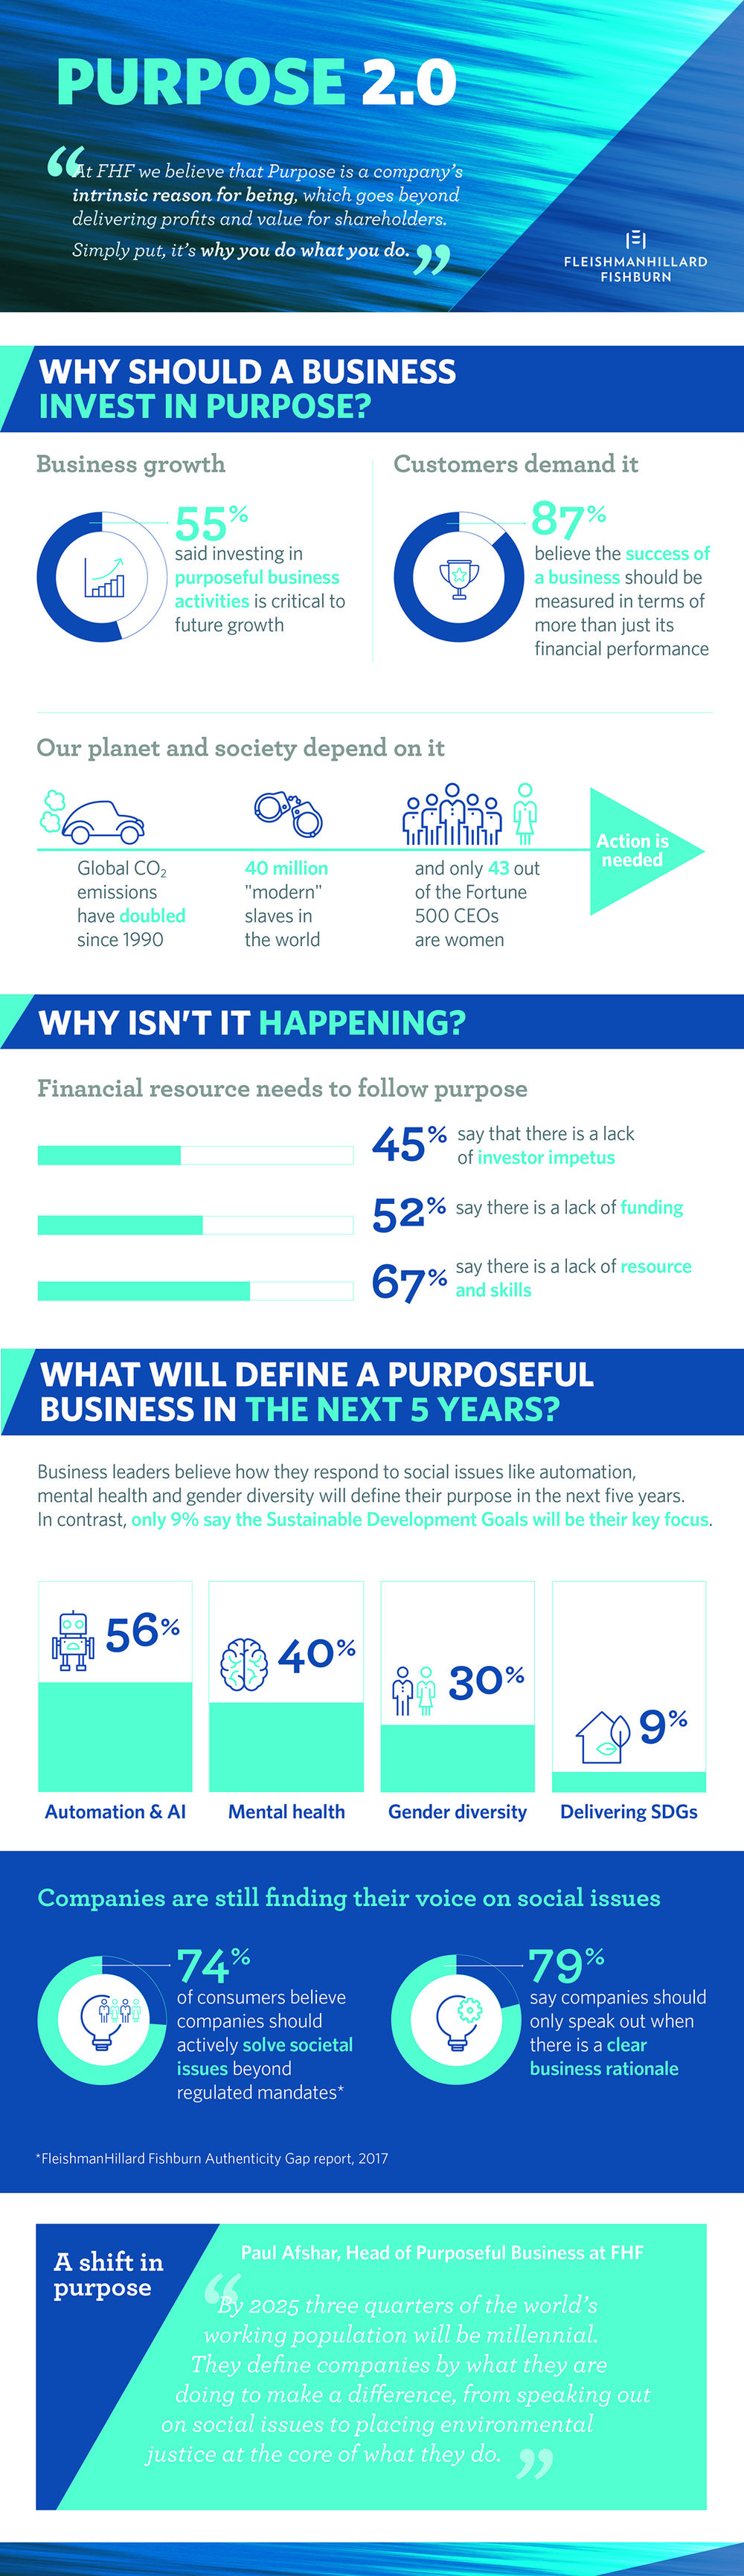 FHF-Purpose-Trends-Infographic-July-2018.jpg